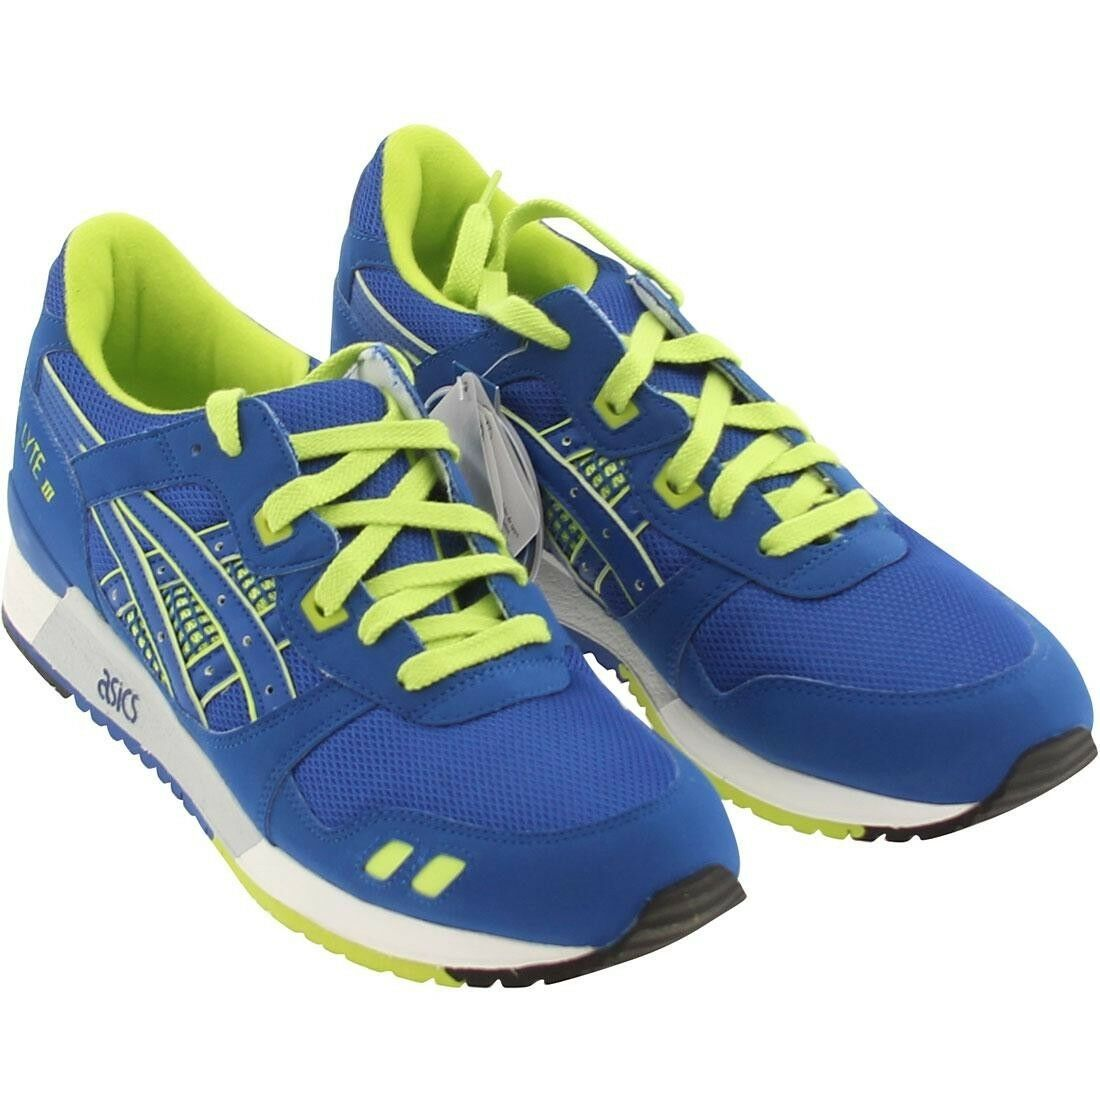 9.0 Asics Men Gel-Lyte III 3 royal neon green H30EK-9059